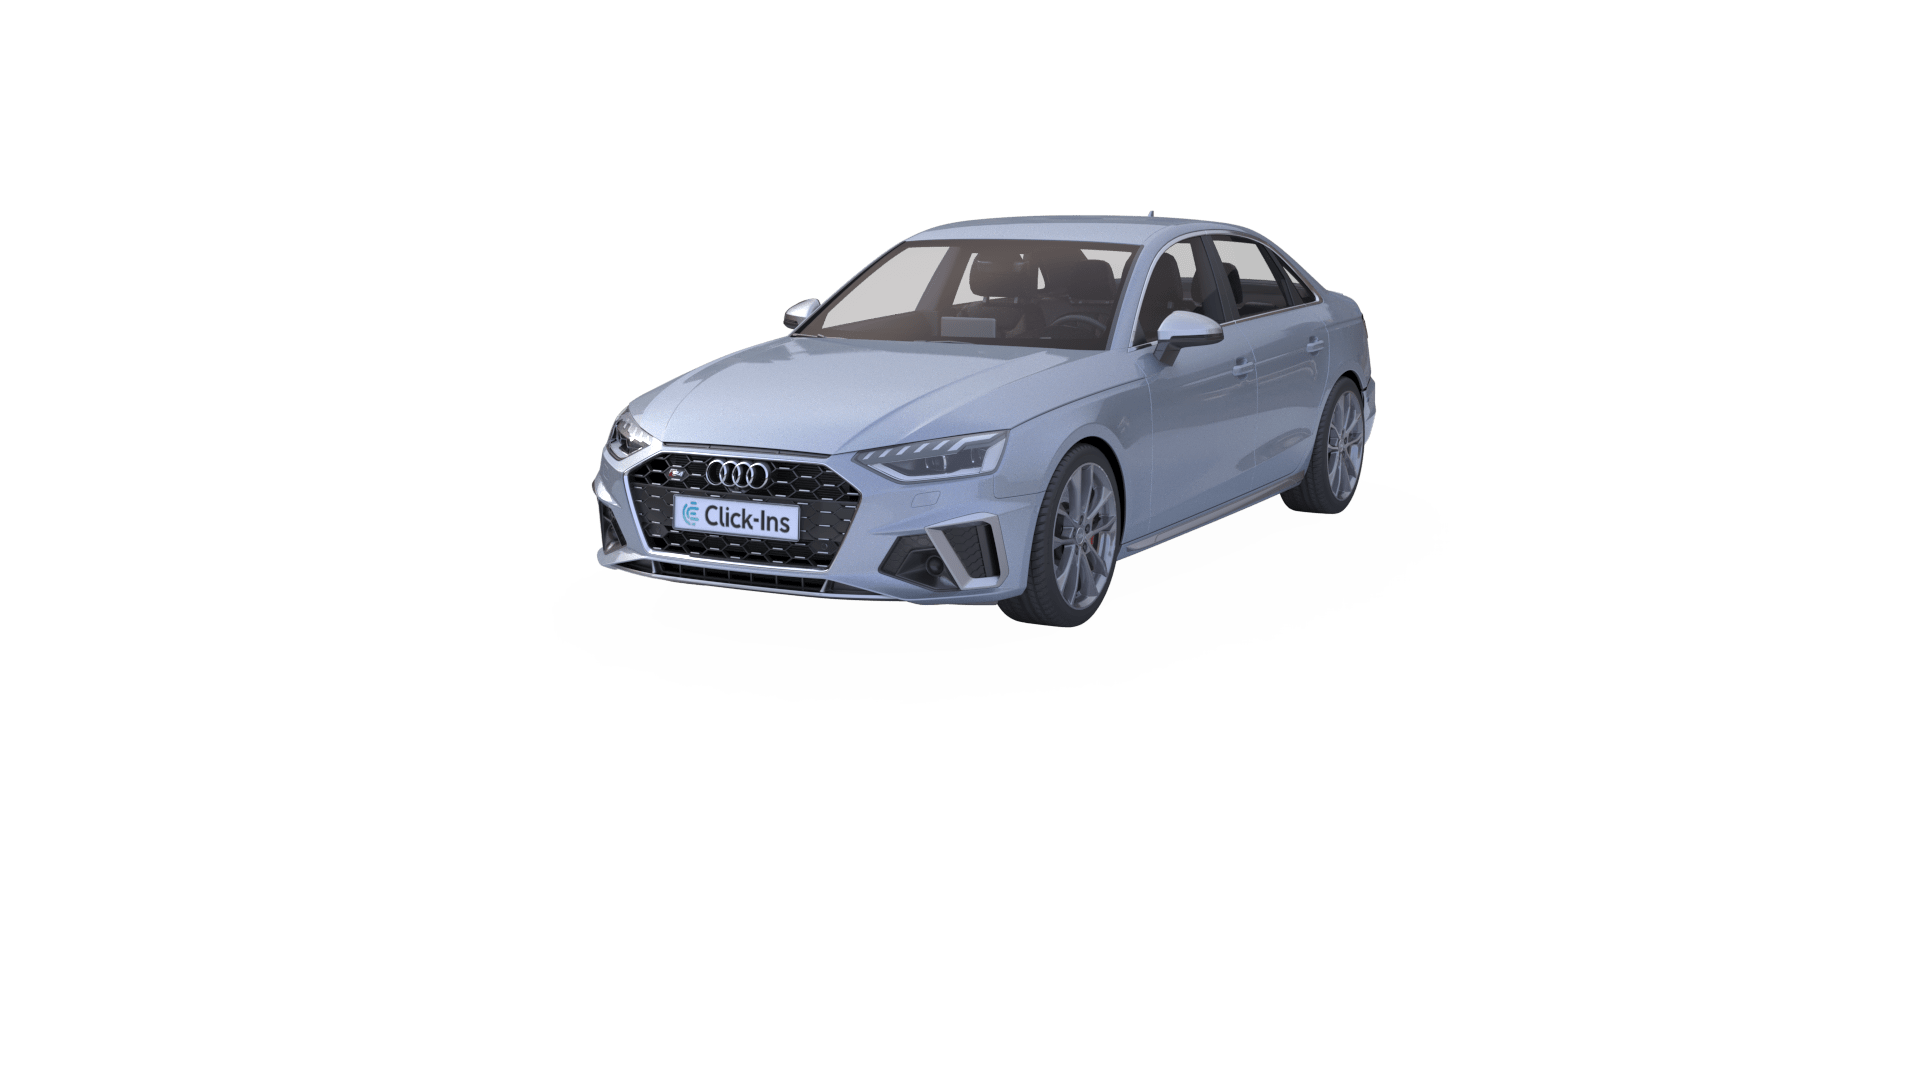 Live 3d model used for testing